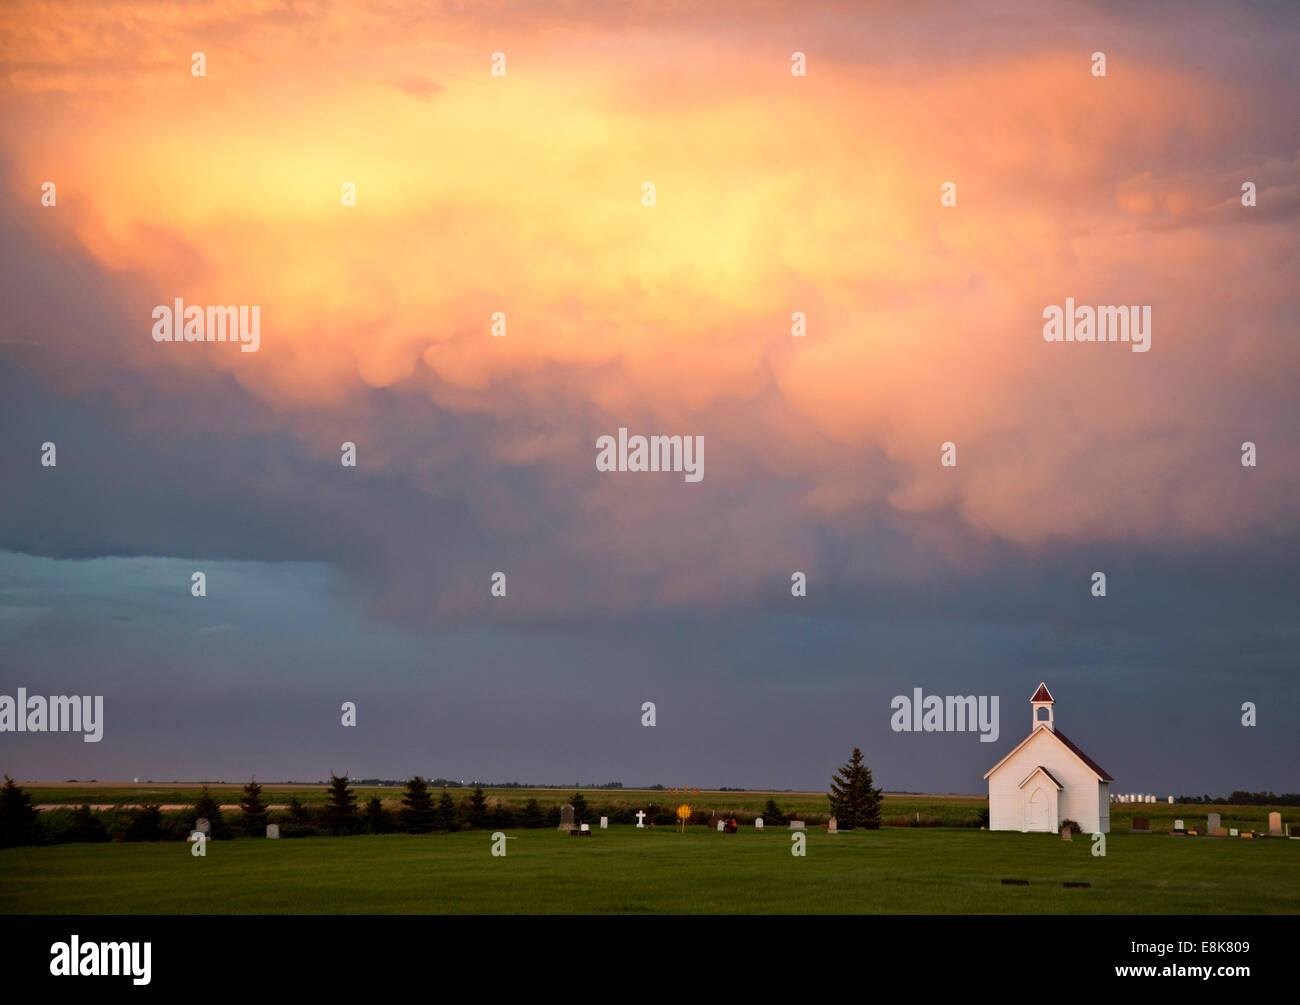 Storm Clouds Saskatchewan With Country Church And Sunset